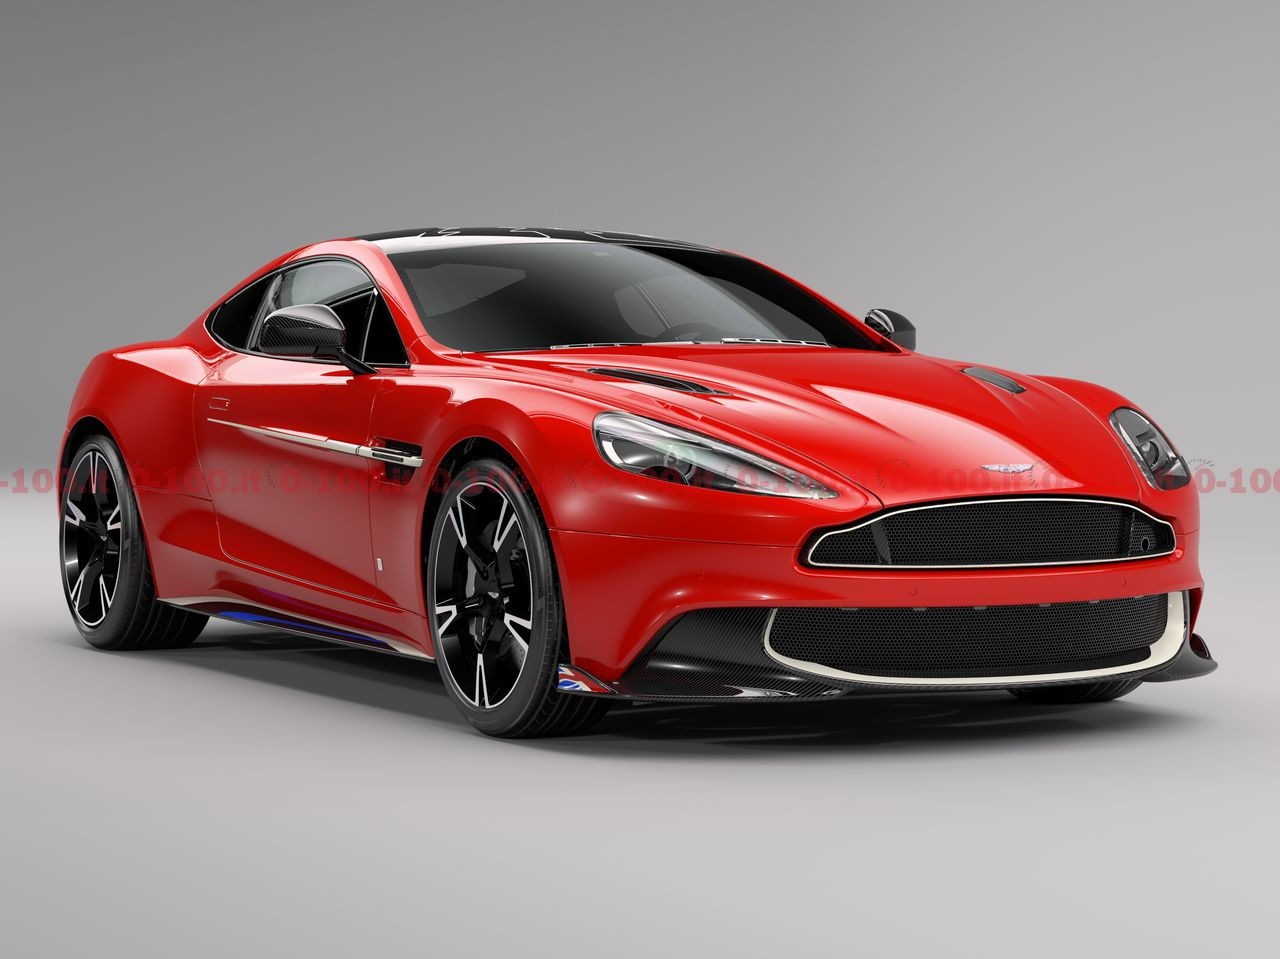 q-by-aston-martin-vanquish-red-arrow-edition_0-100_1